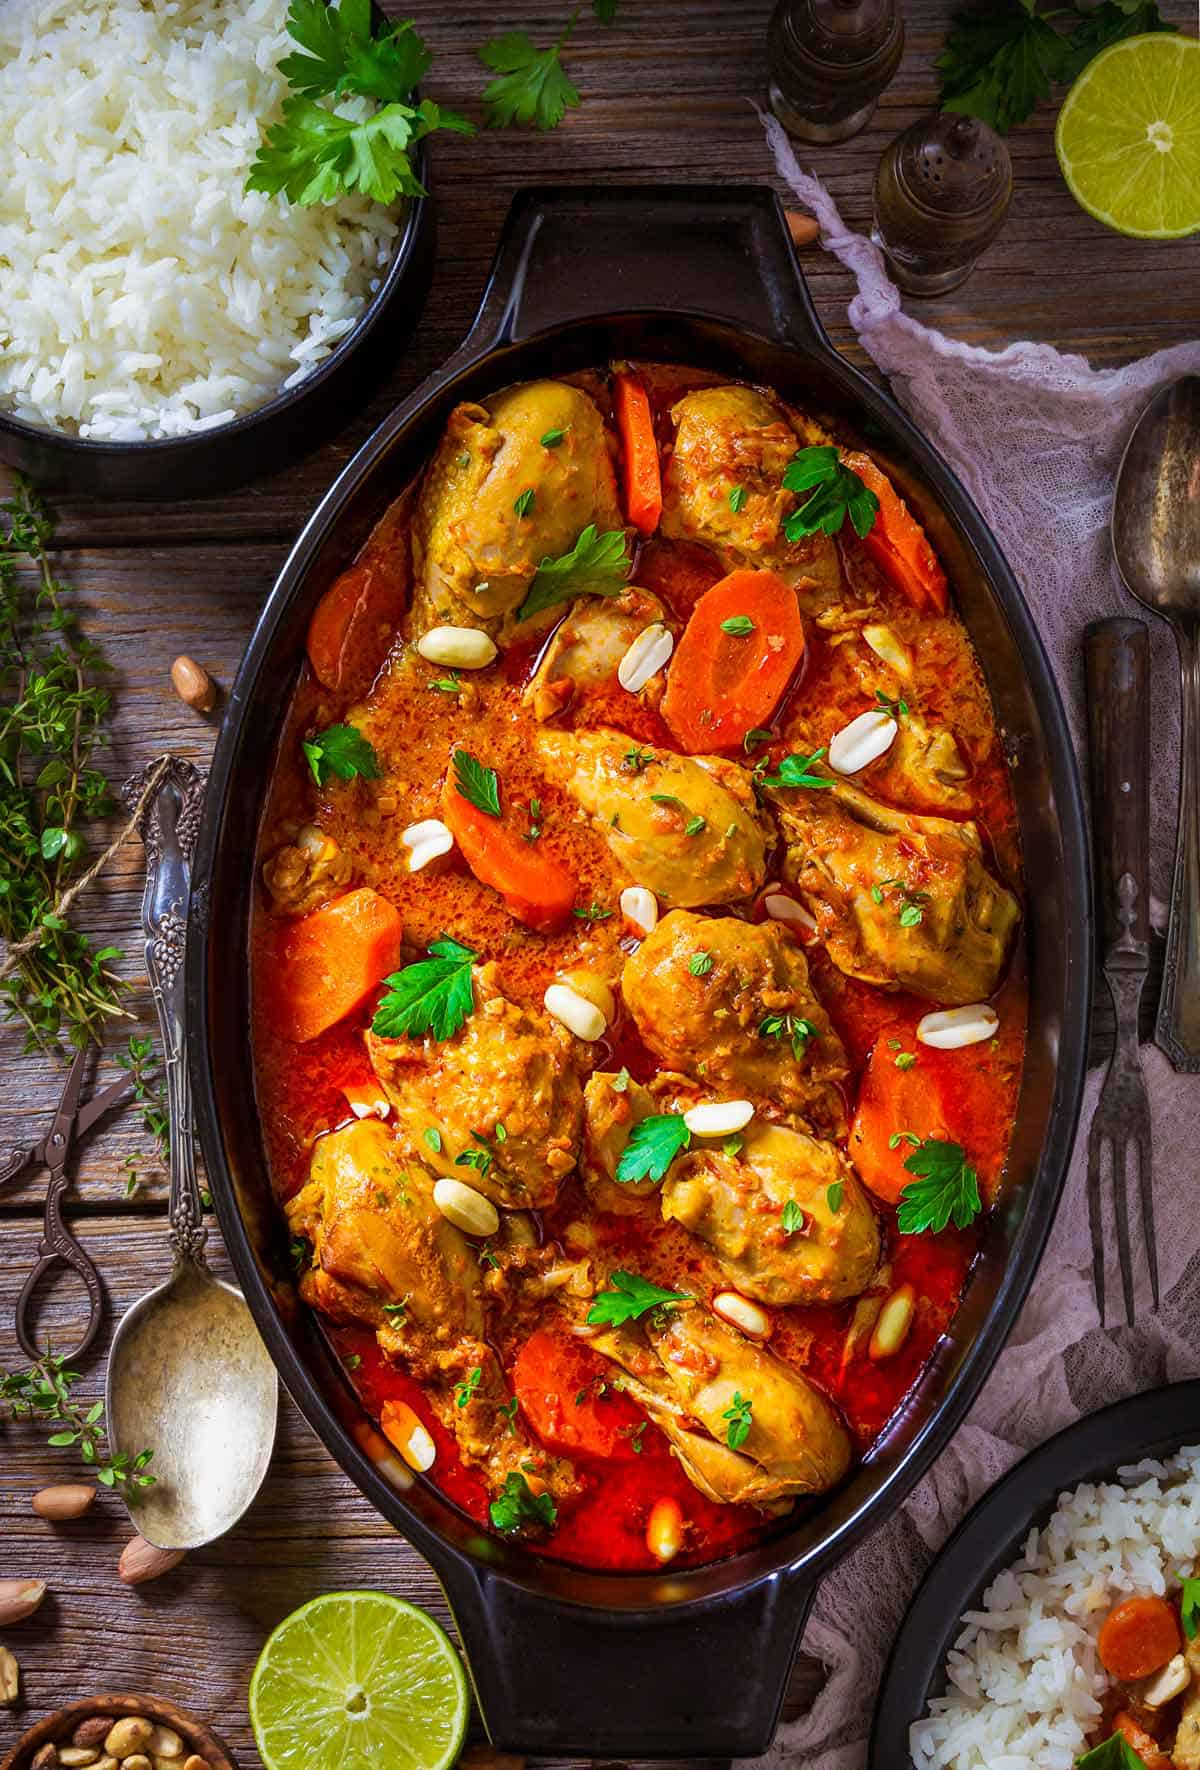 African peanut stew with chicken drumsticks in an oval dish on a table with white rice.